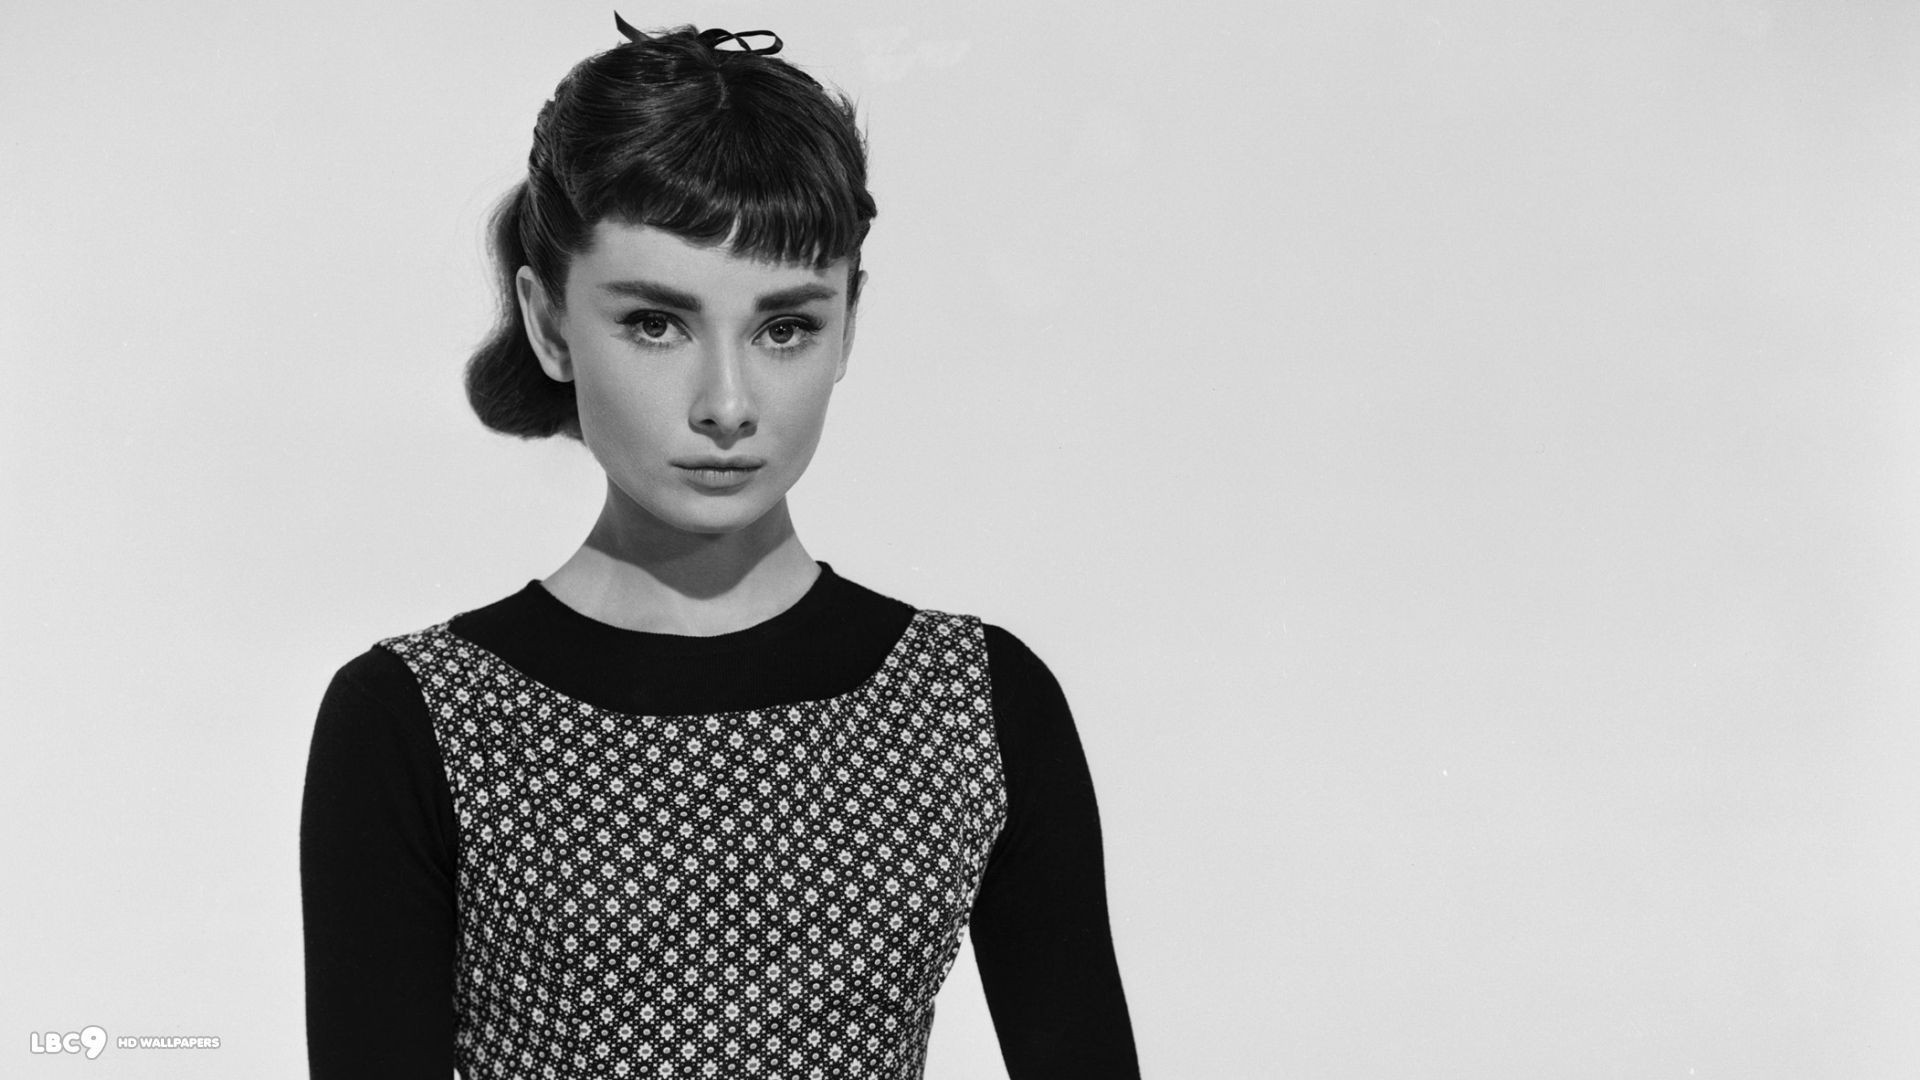 Audrey Hepburn Free Wallpaper and Background